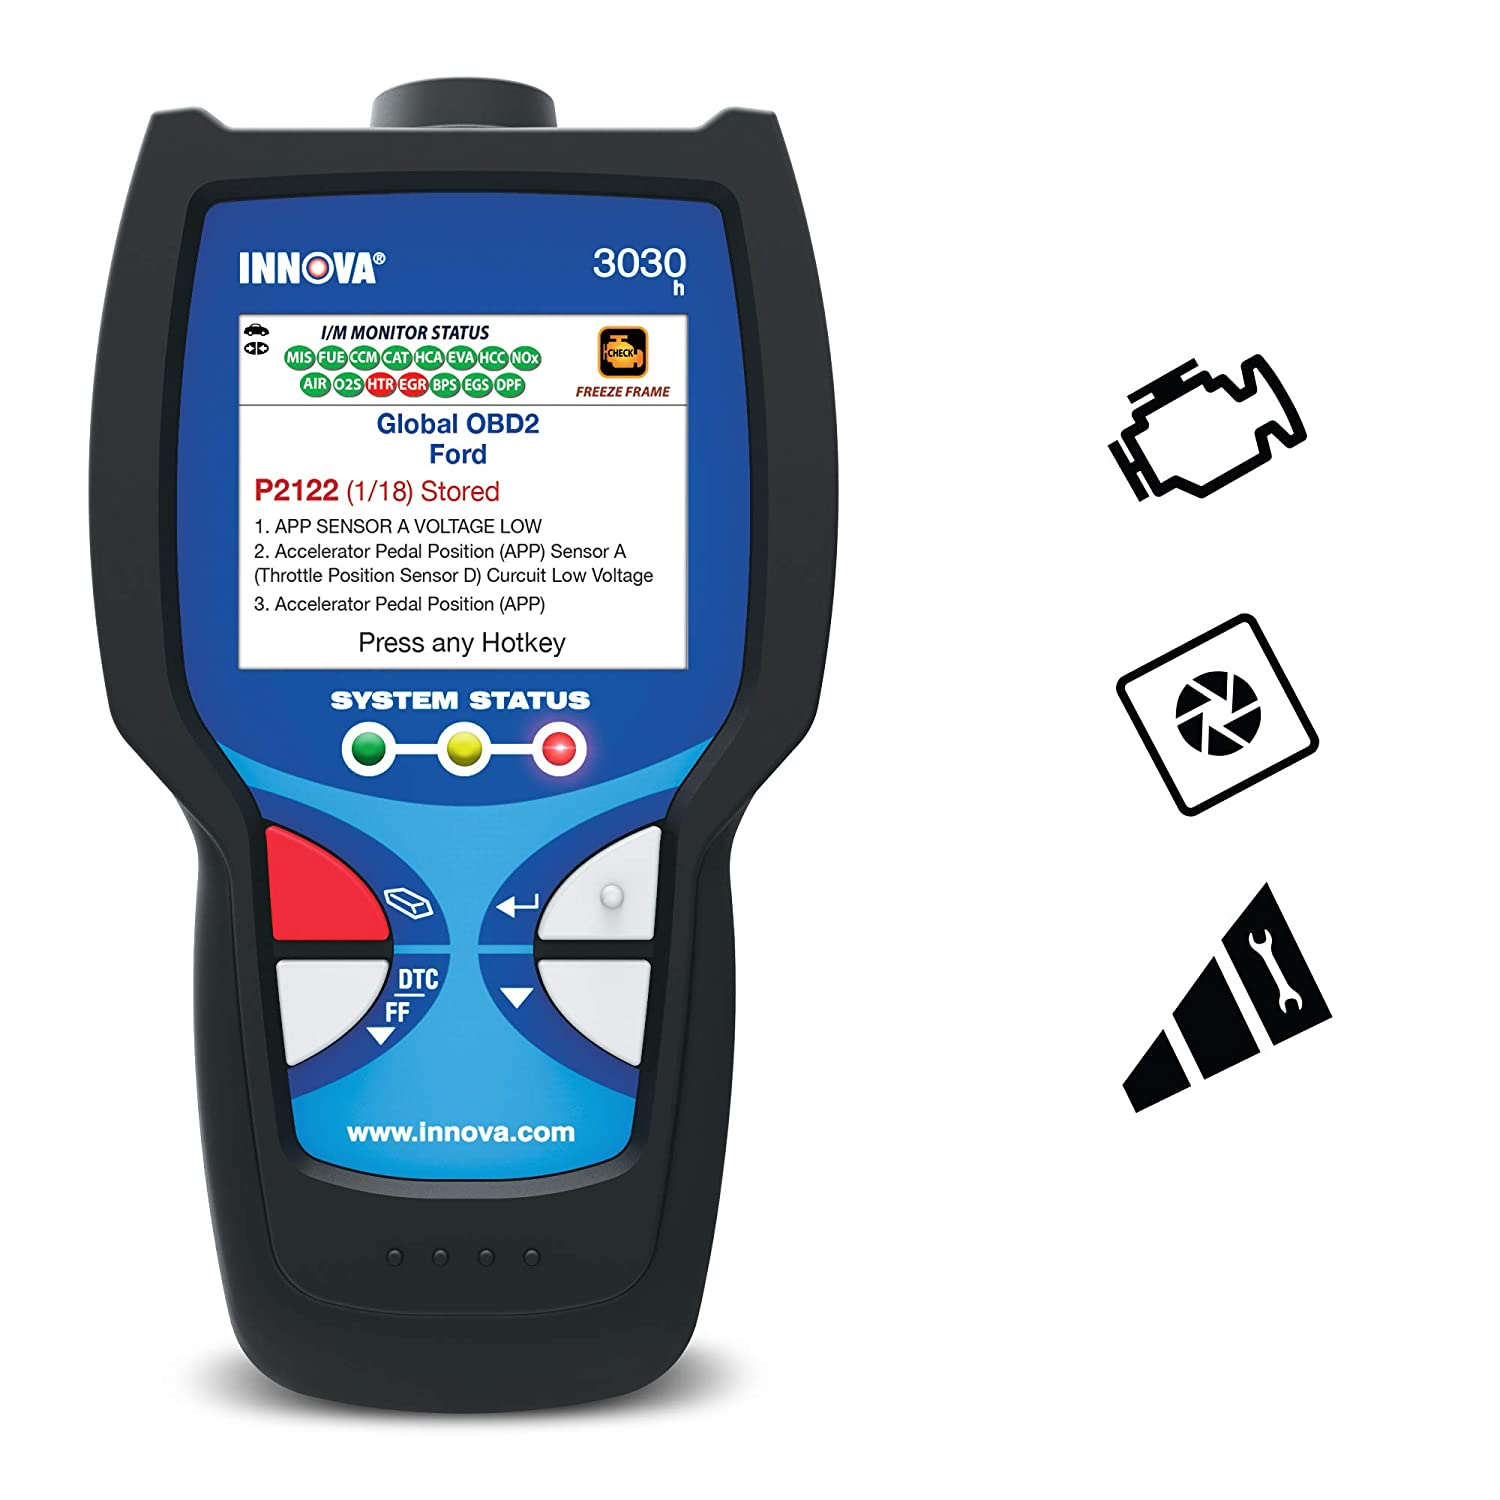 Innova 3030h Diagnostic Code Reader/Scan Tool with Freeze Frame for OBD2 Vehicles